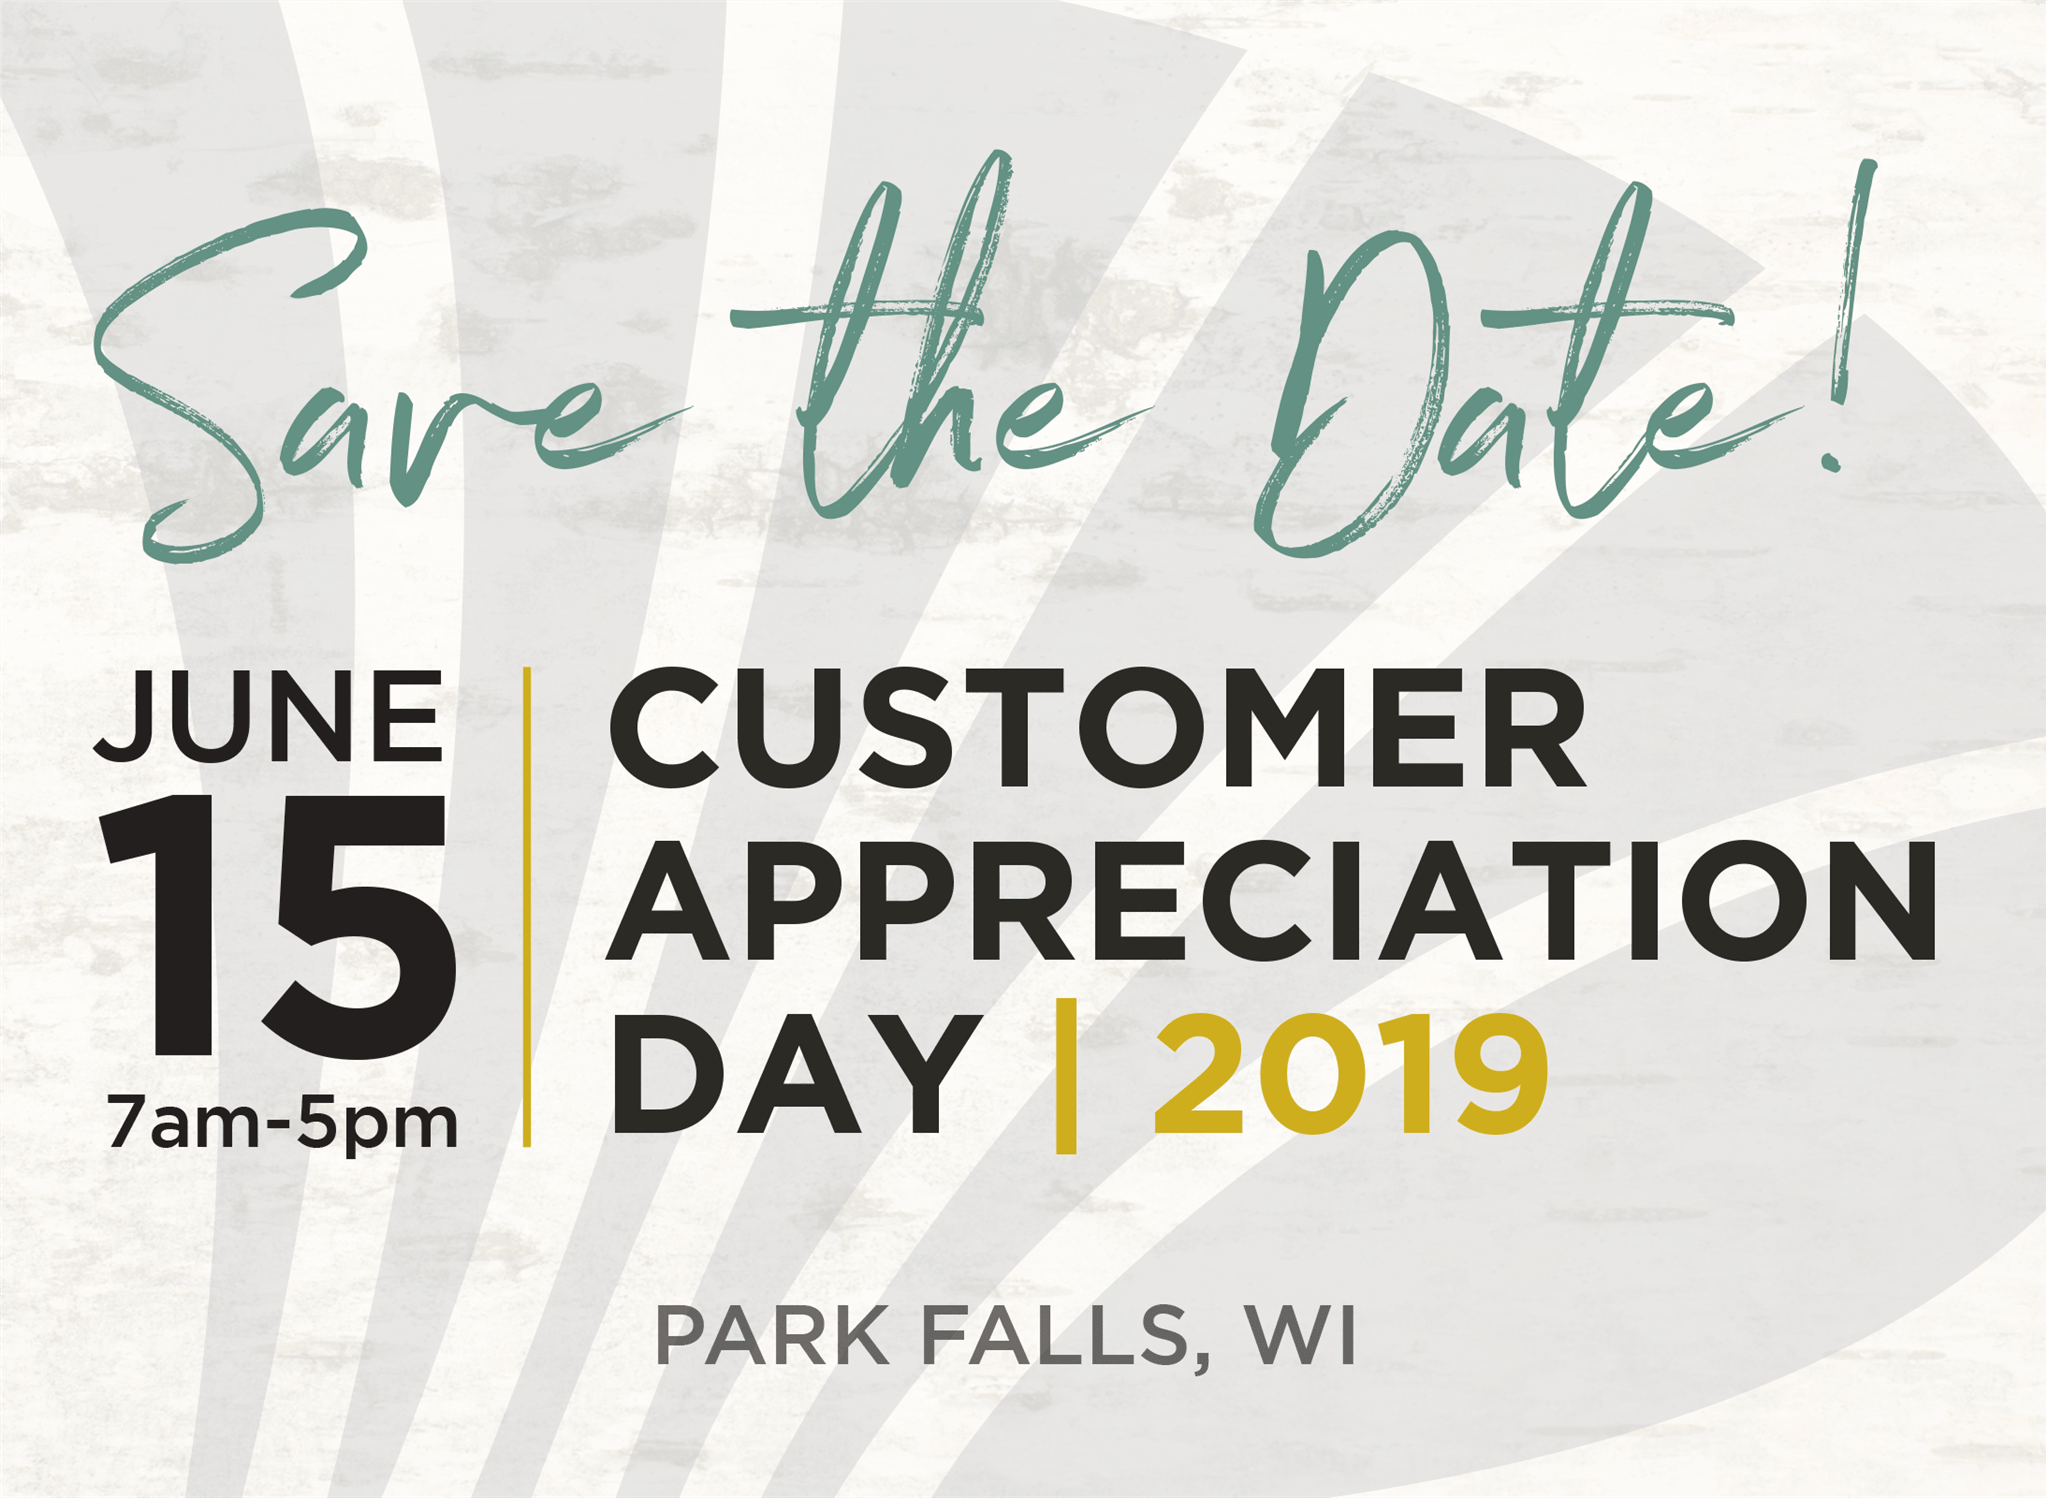 st croix customer appreciation day